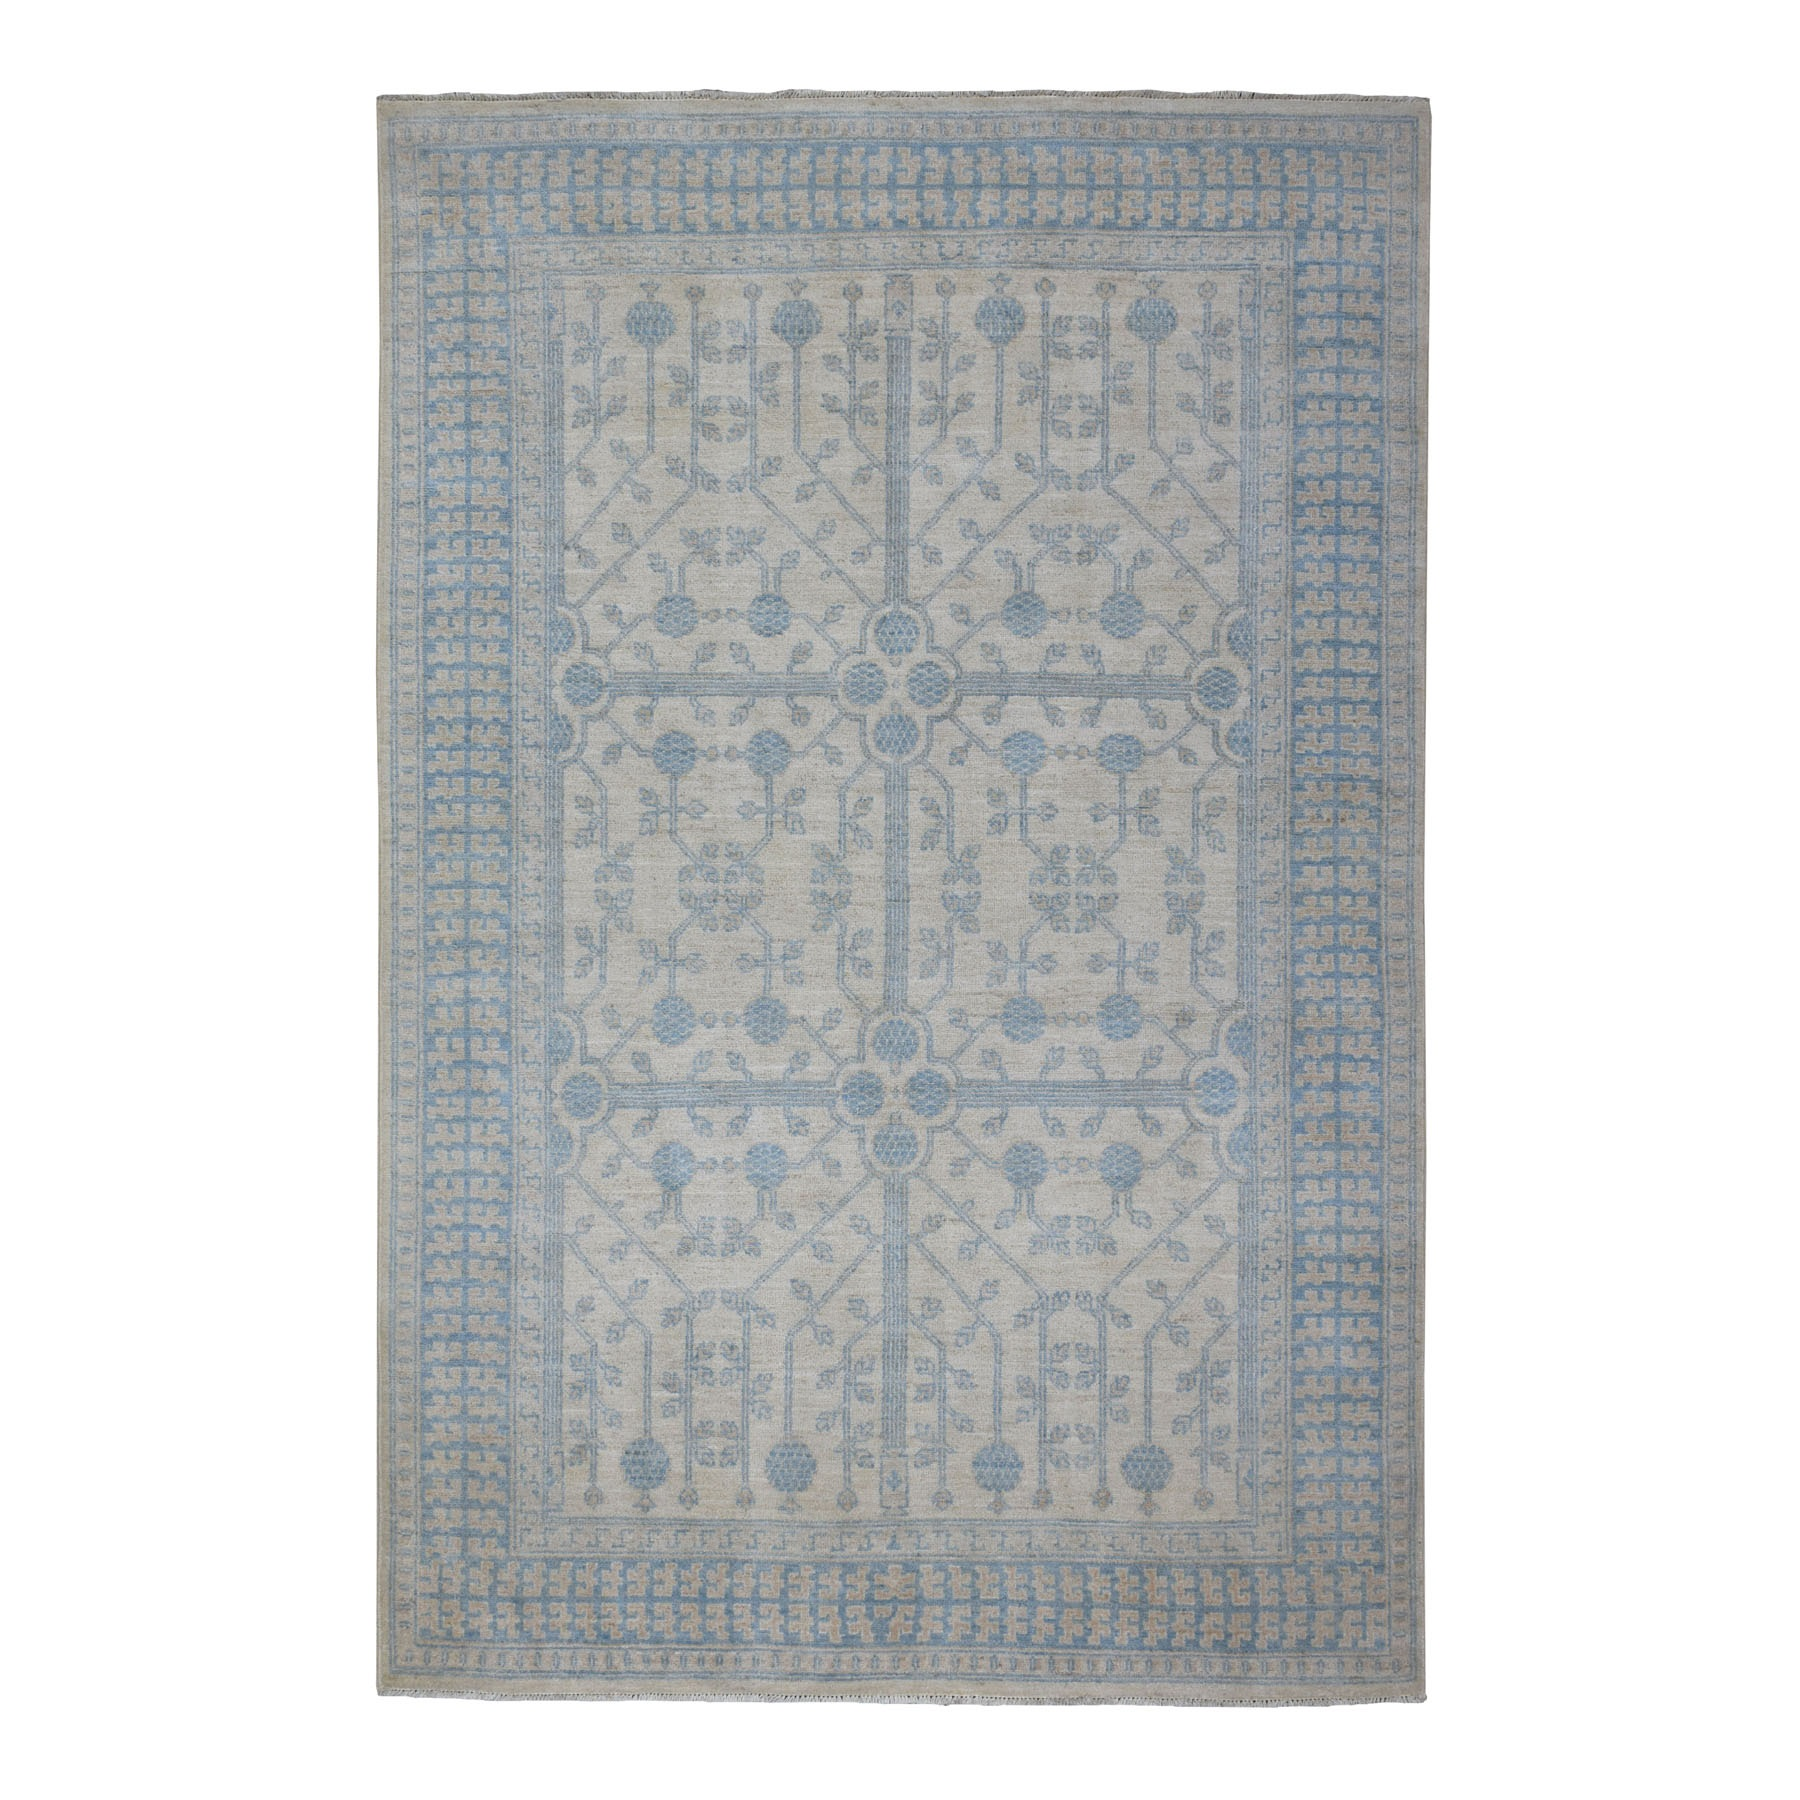 "5'10""x9'1"" White Wash Khotan with Pomegranate Garden Design Hand Knotted Oriental Rug"